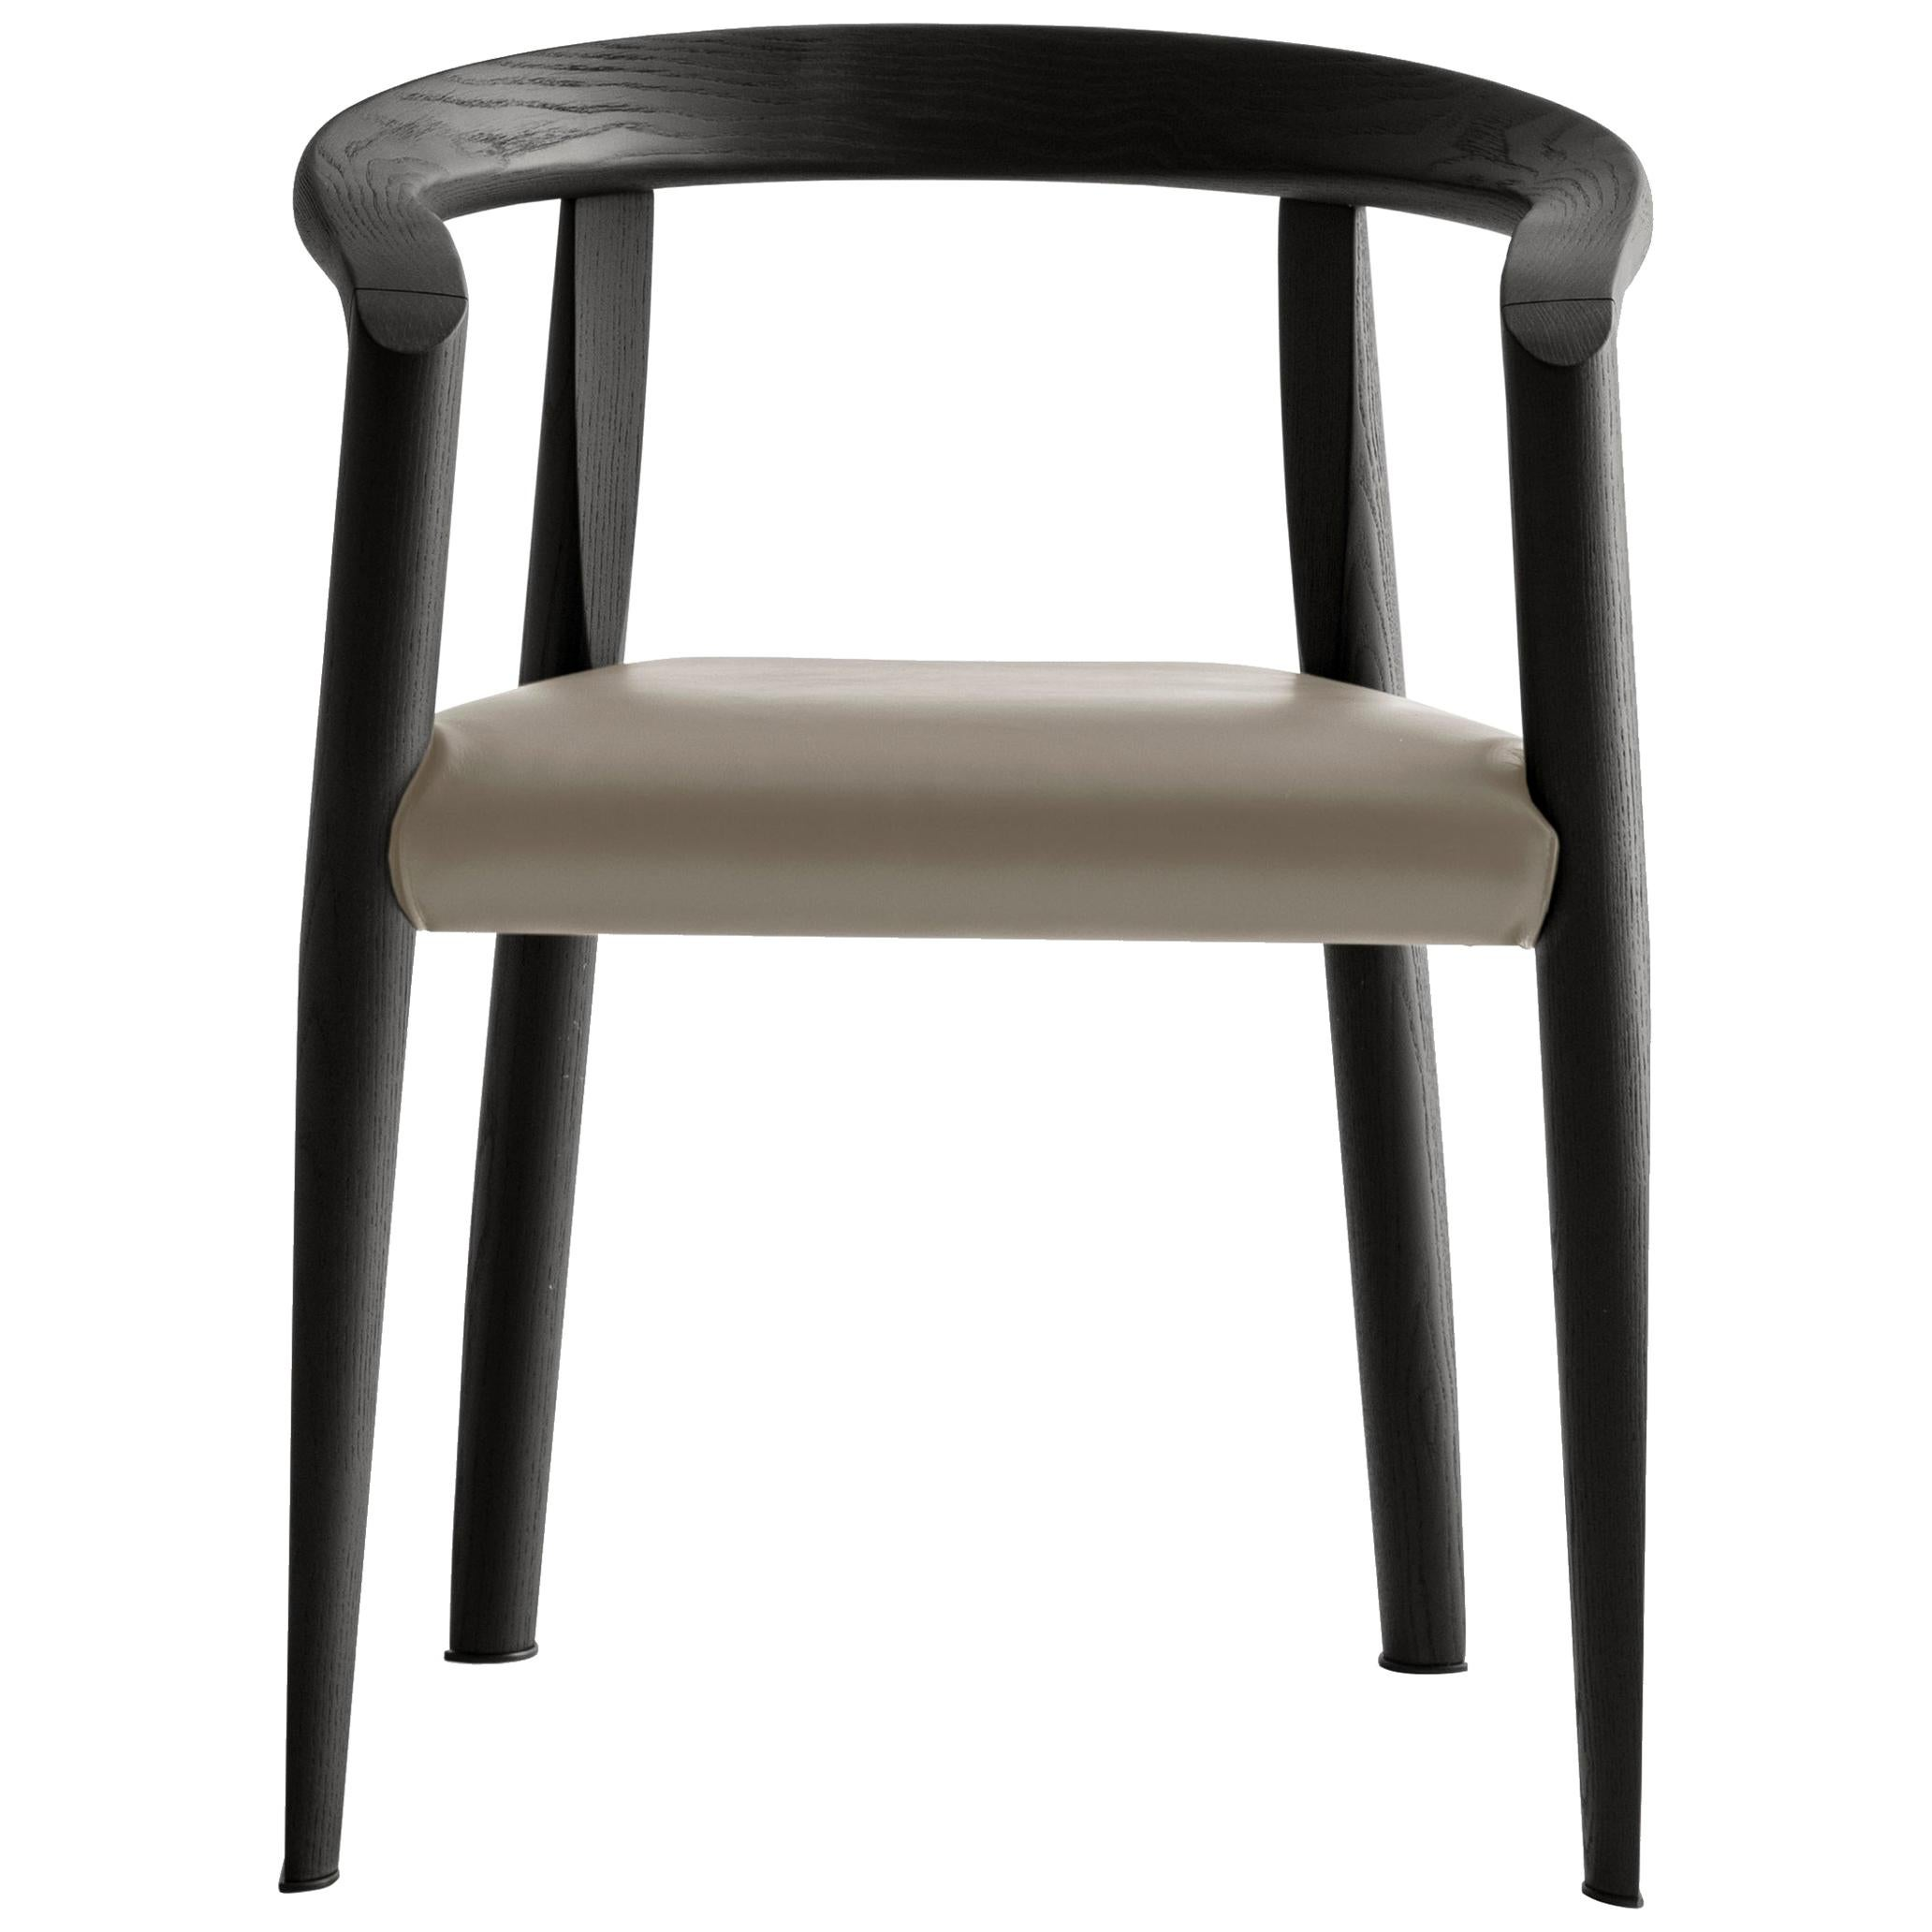 Molteni&C Miss Leather Semi-Upholstered Chair in Black Wood by Tobia Scarpa